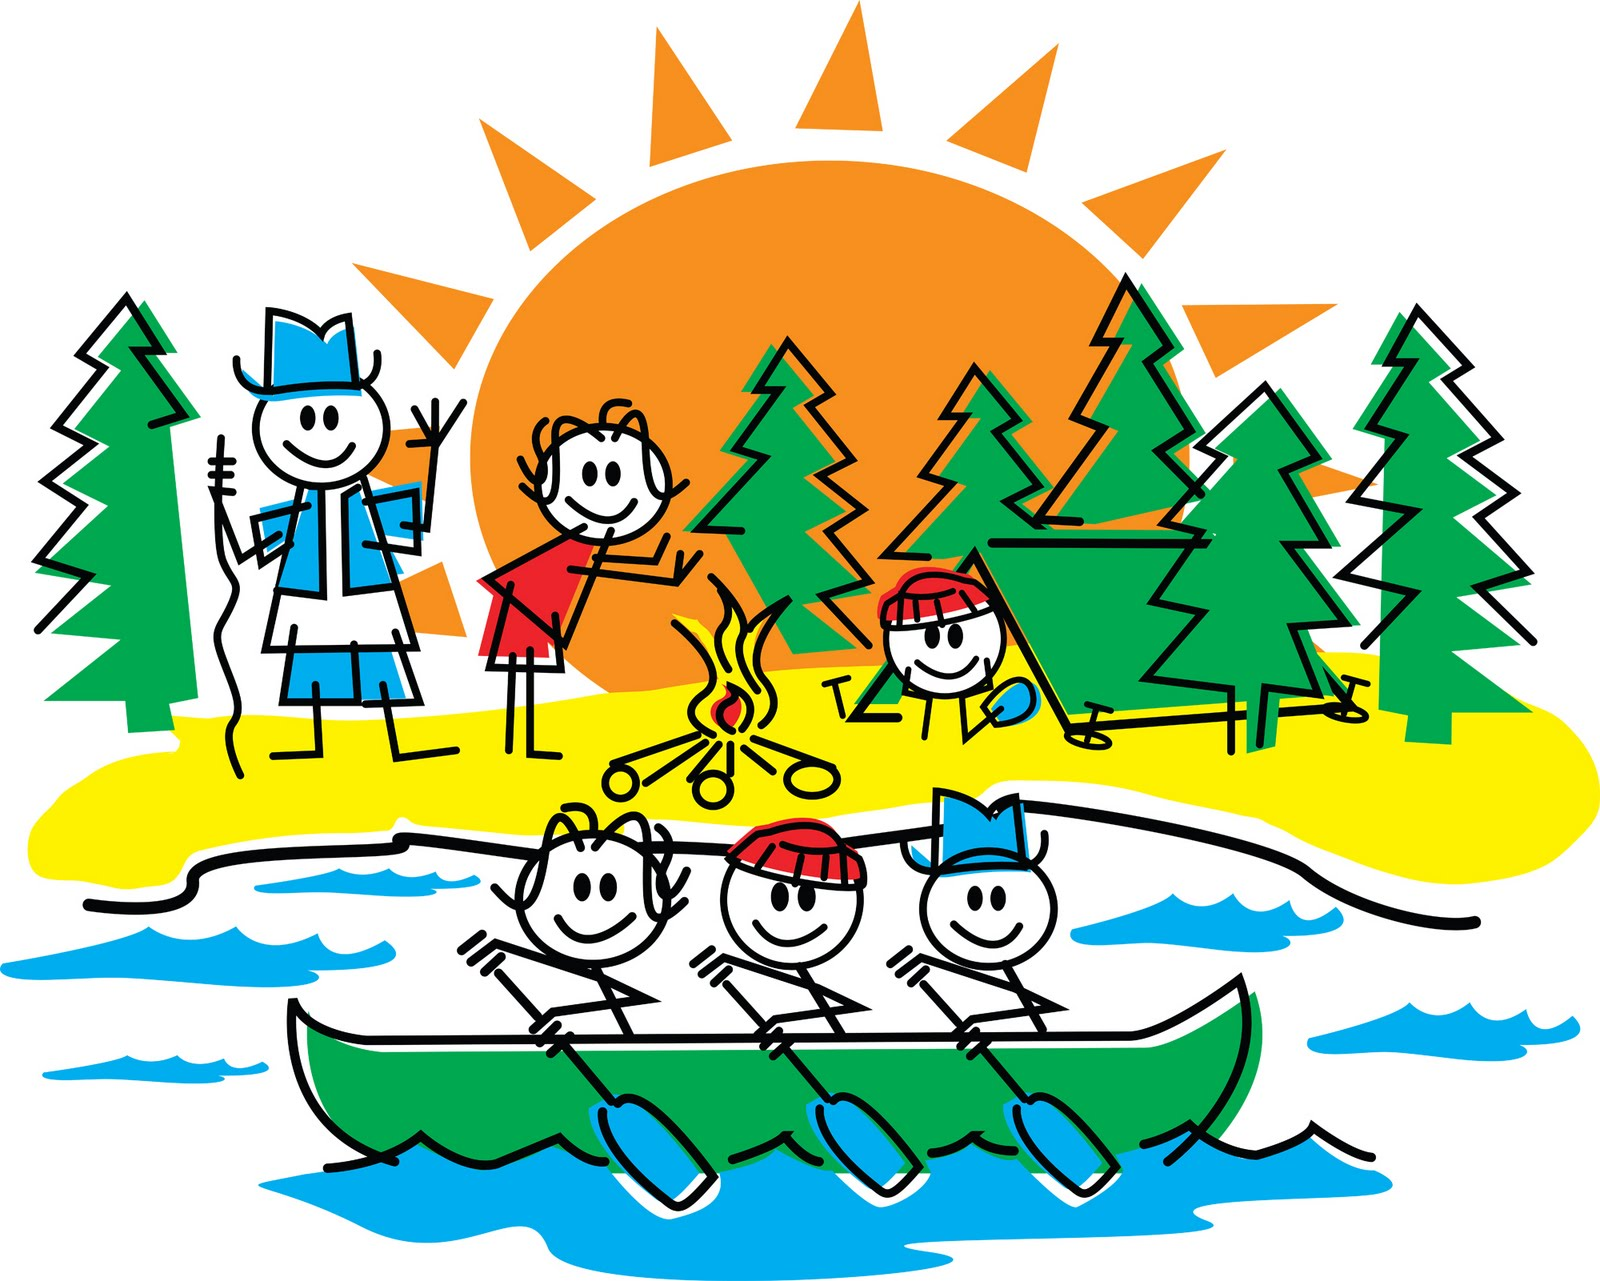 Camper clipart camp counselor. Free cliparts download clip